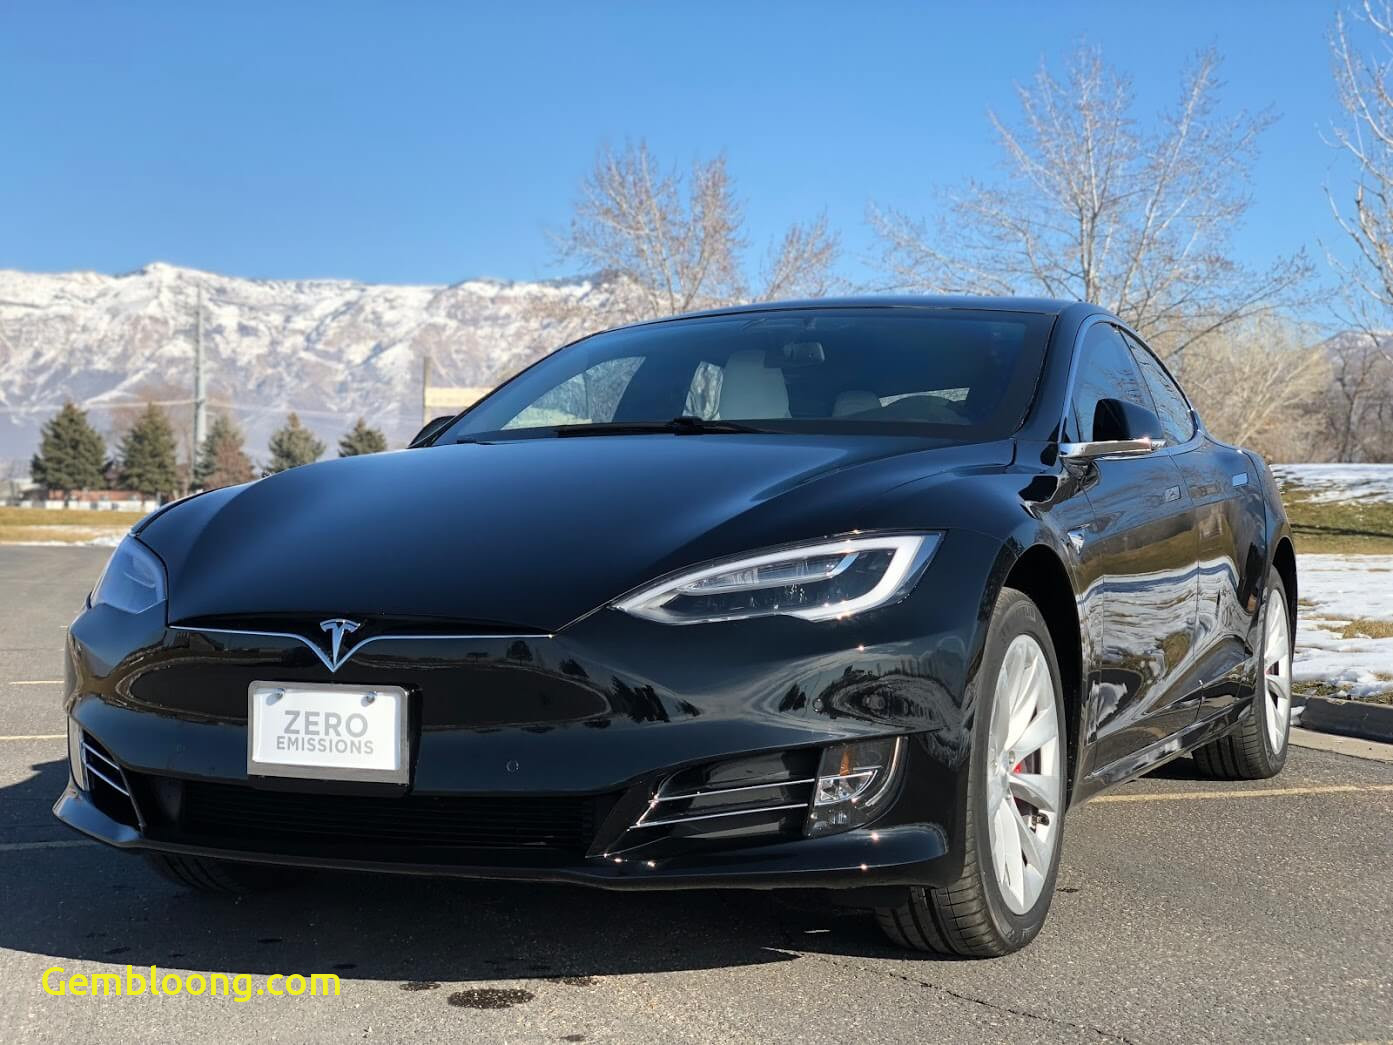 Which Tesla Model is the Fastest Beautiful Fastest Bulletproof Car In the World Armored Tesla Model